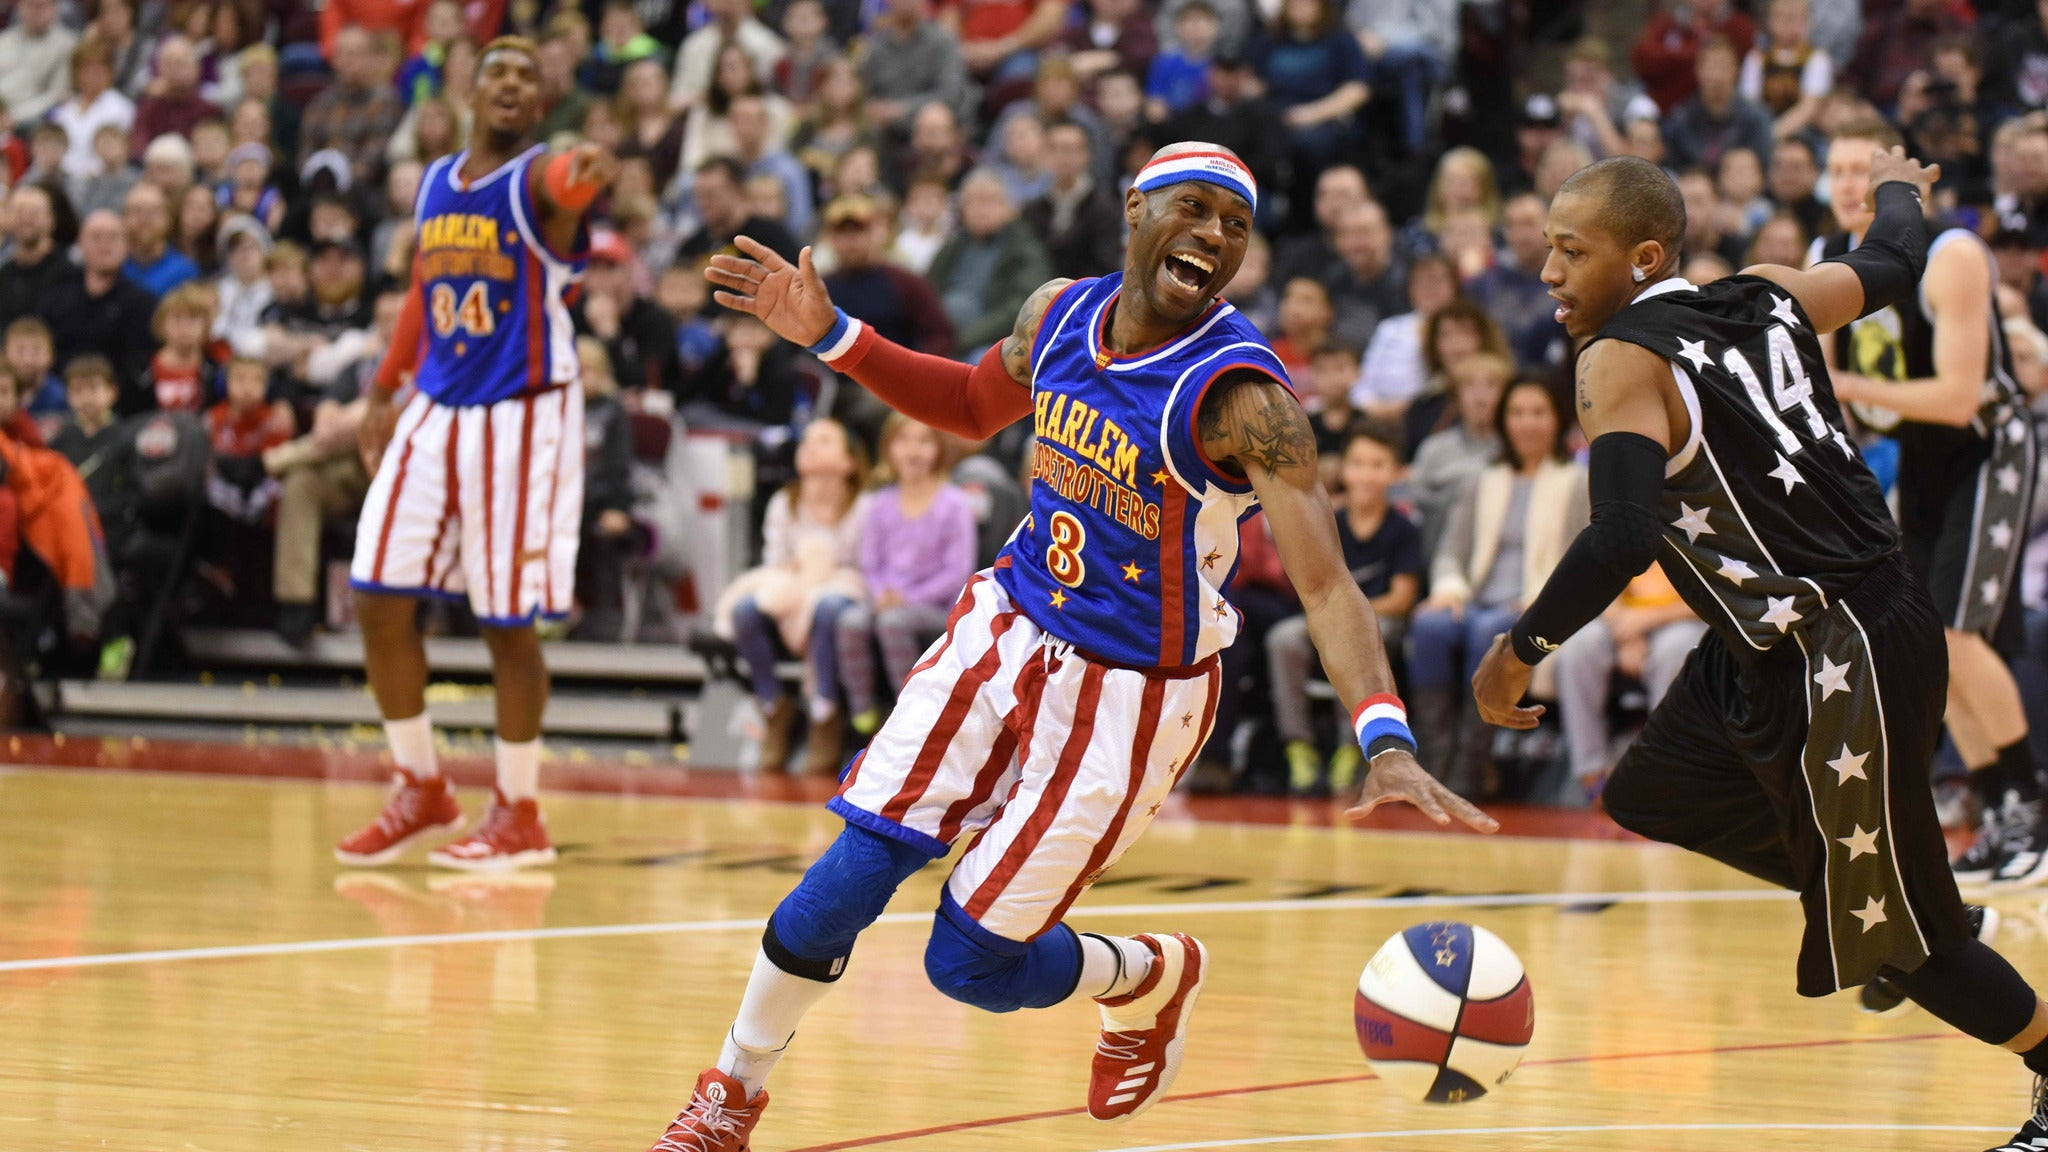 Harlem Globetrotters at Broadmoor World Arena - Colorado Springs, CO 80906